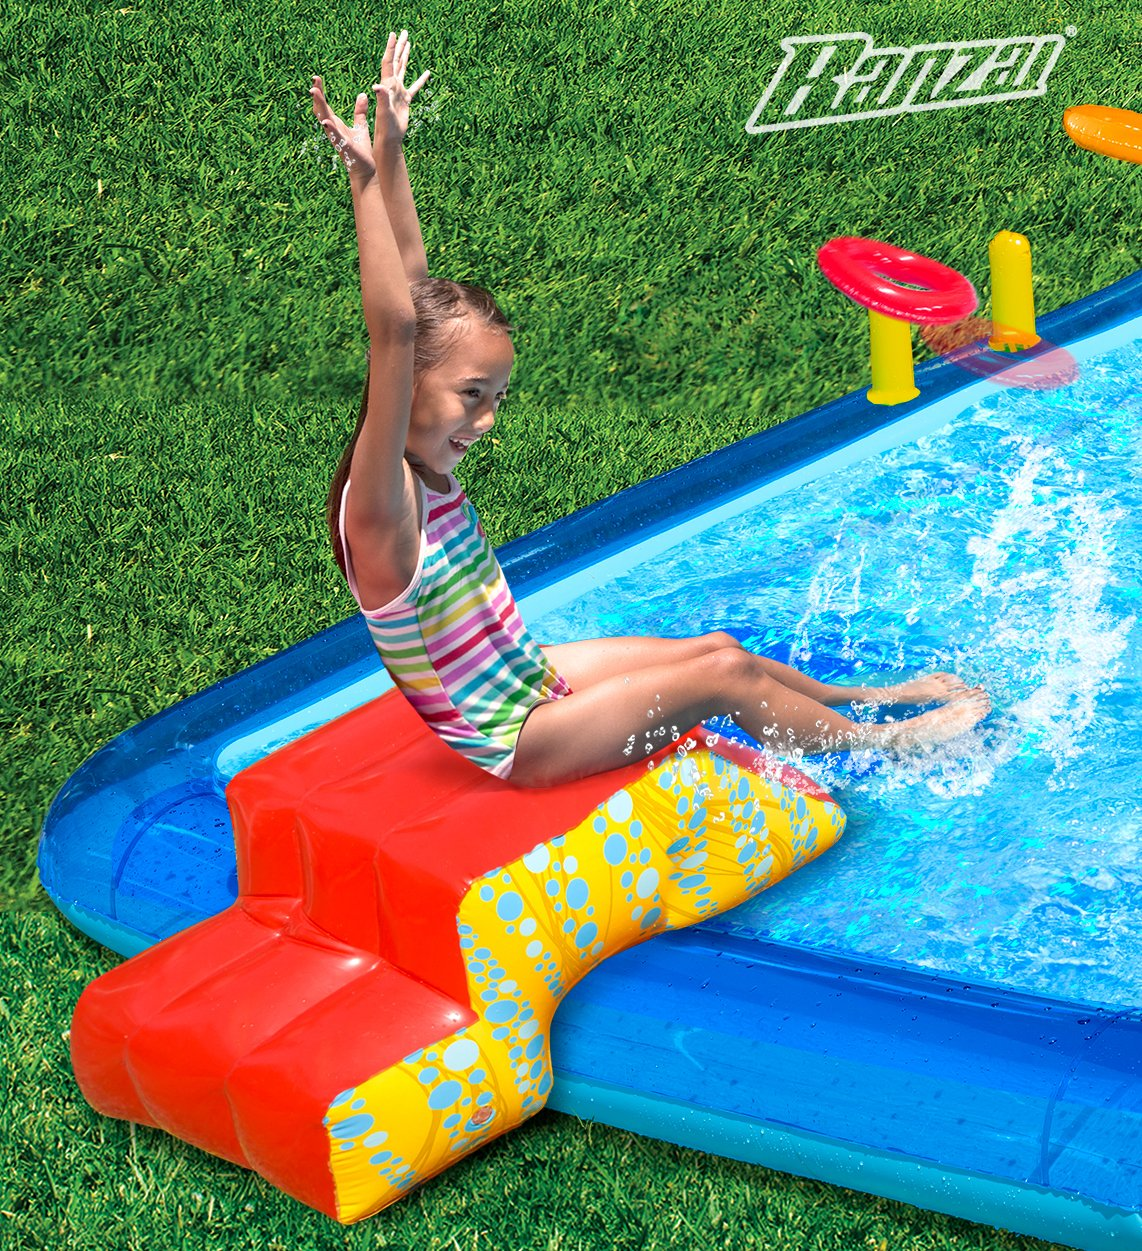 BANZAI Obstacle Course Activity Pool by BANZAI (Image #6)